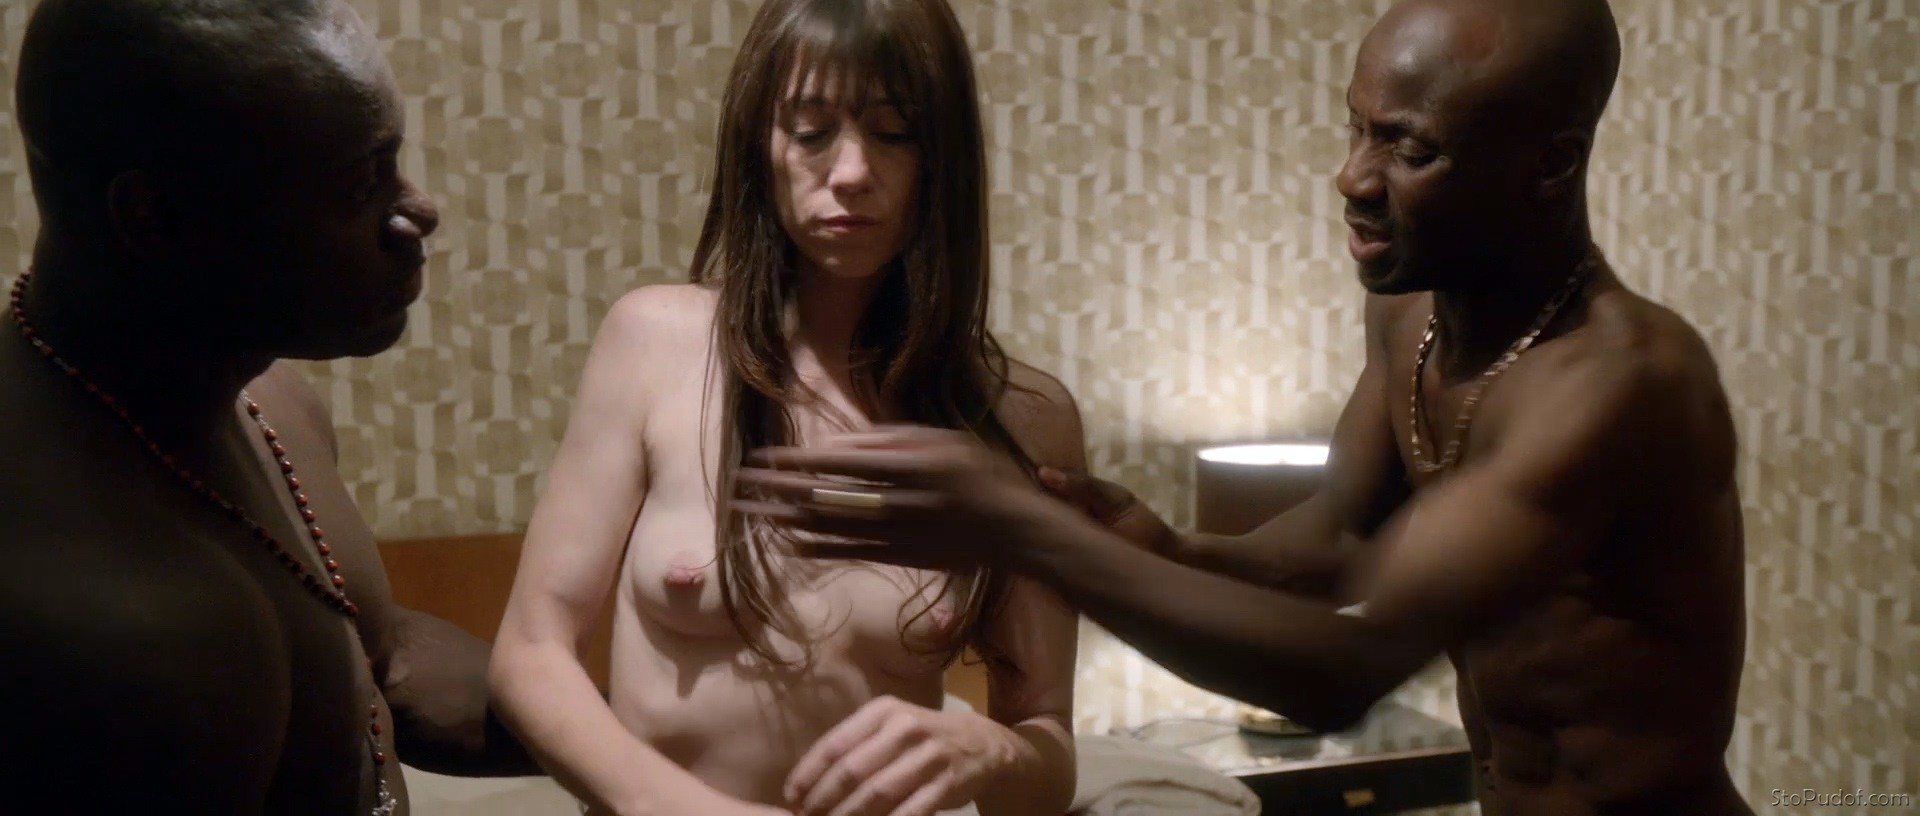 Charlotte Gainsbourg pictures nude photos - UkPhotoSafari